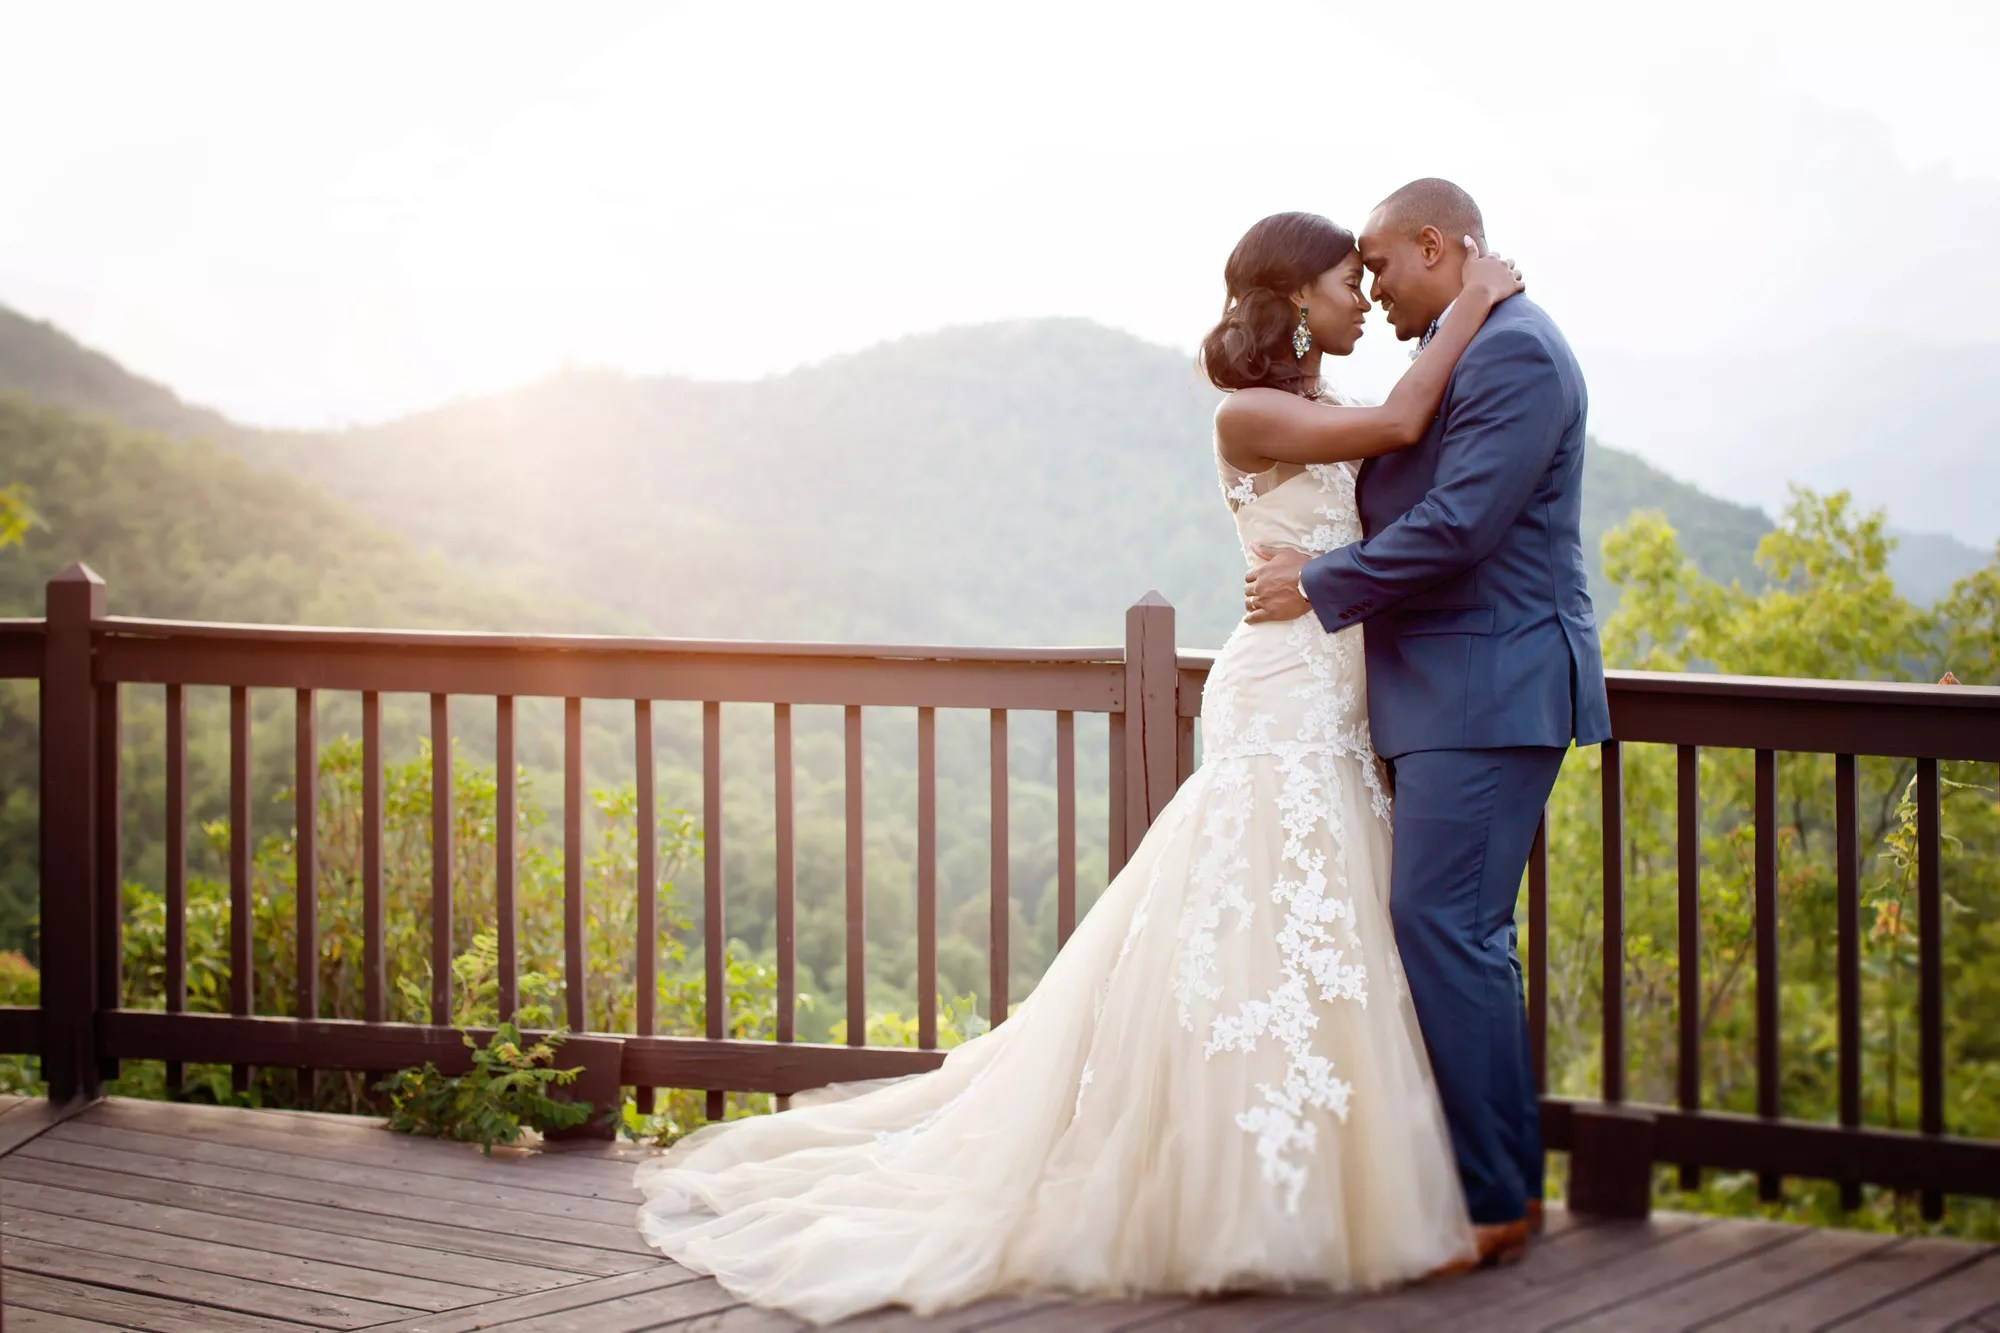 african american albums african american wedding dresses An Elegant Mountainside Wedding at Hawkesdene House in Andrews North Carolina